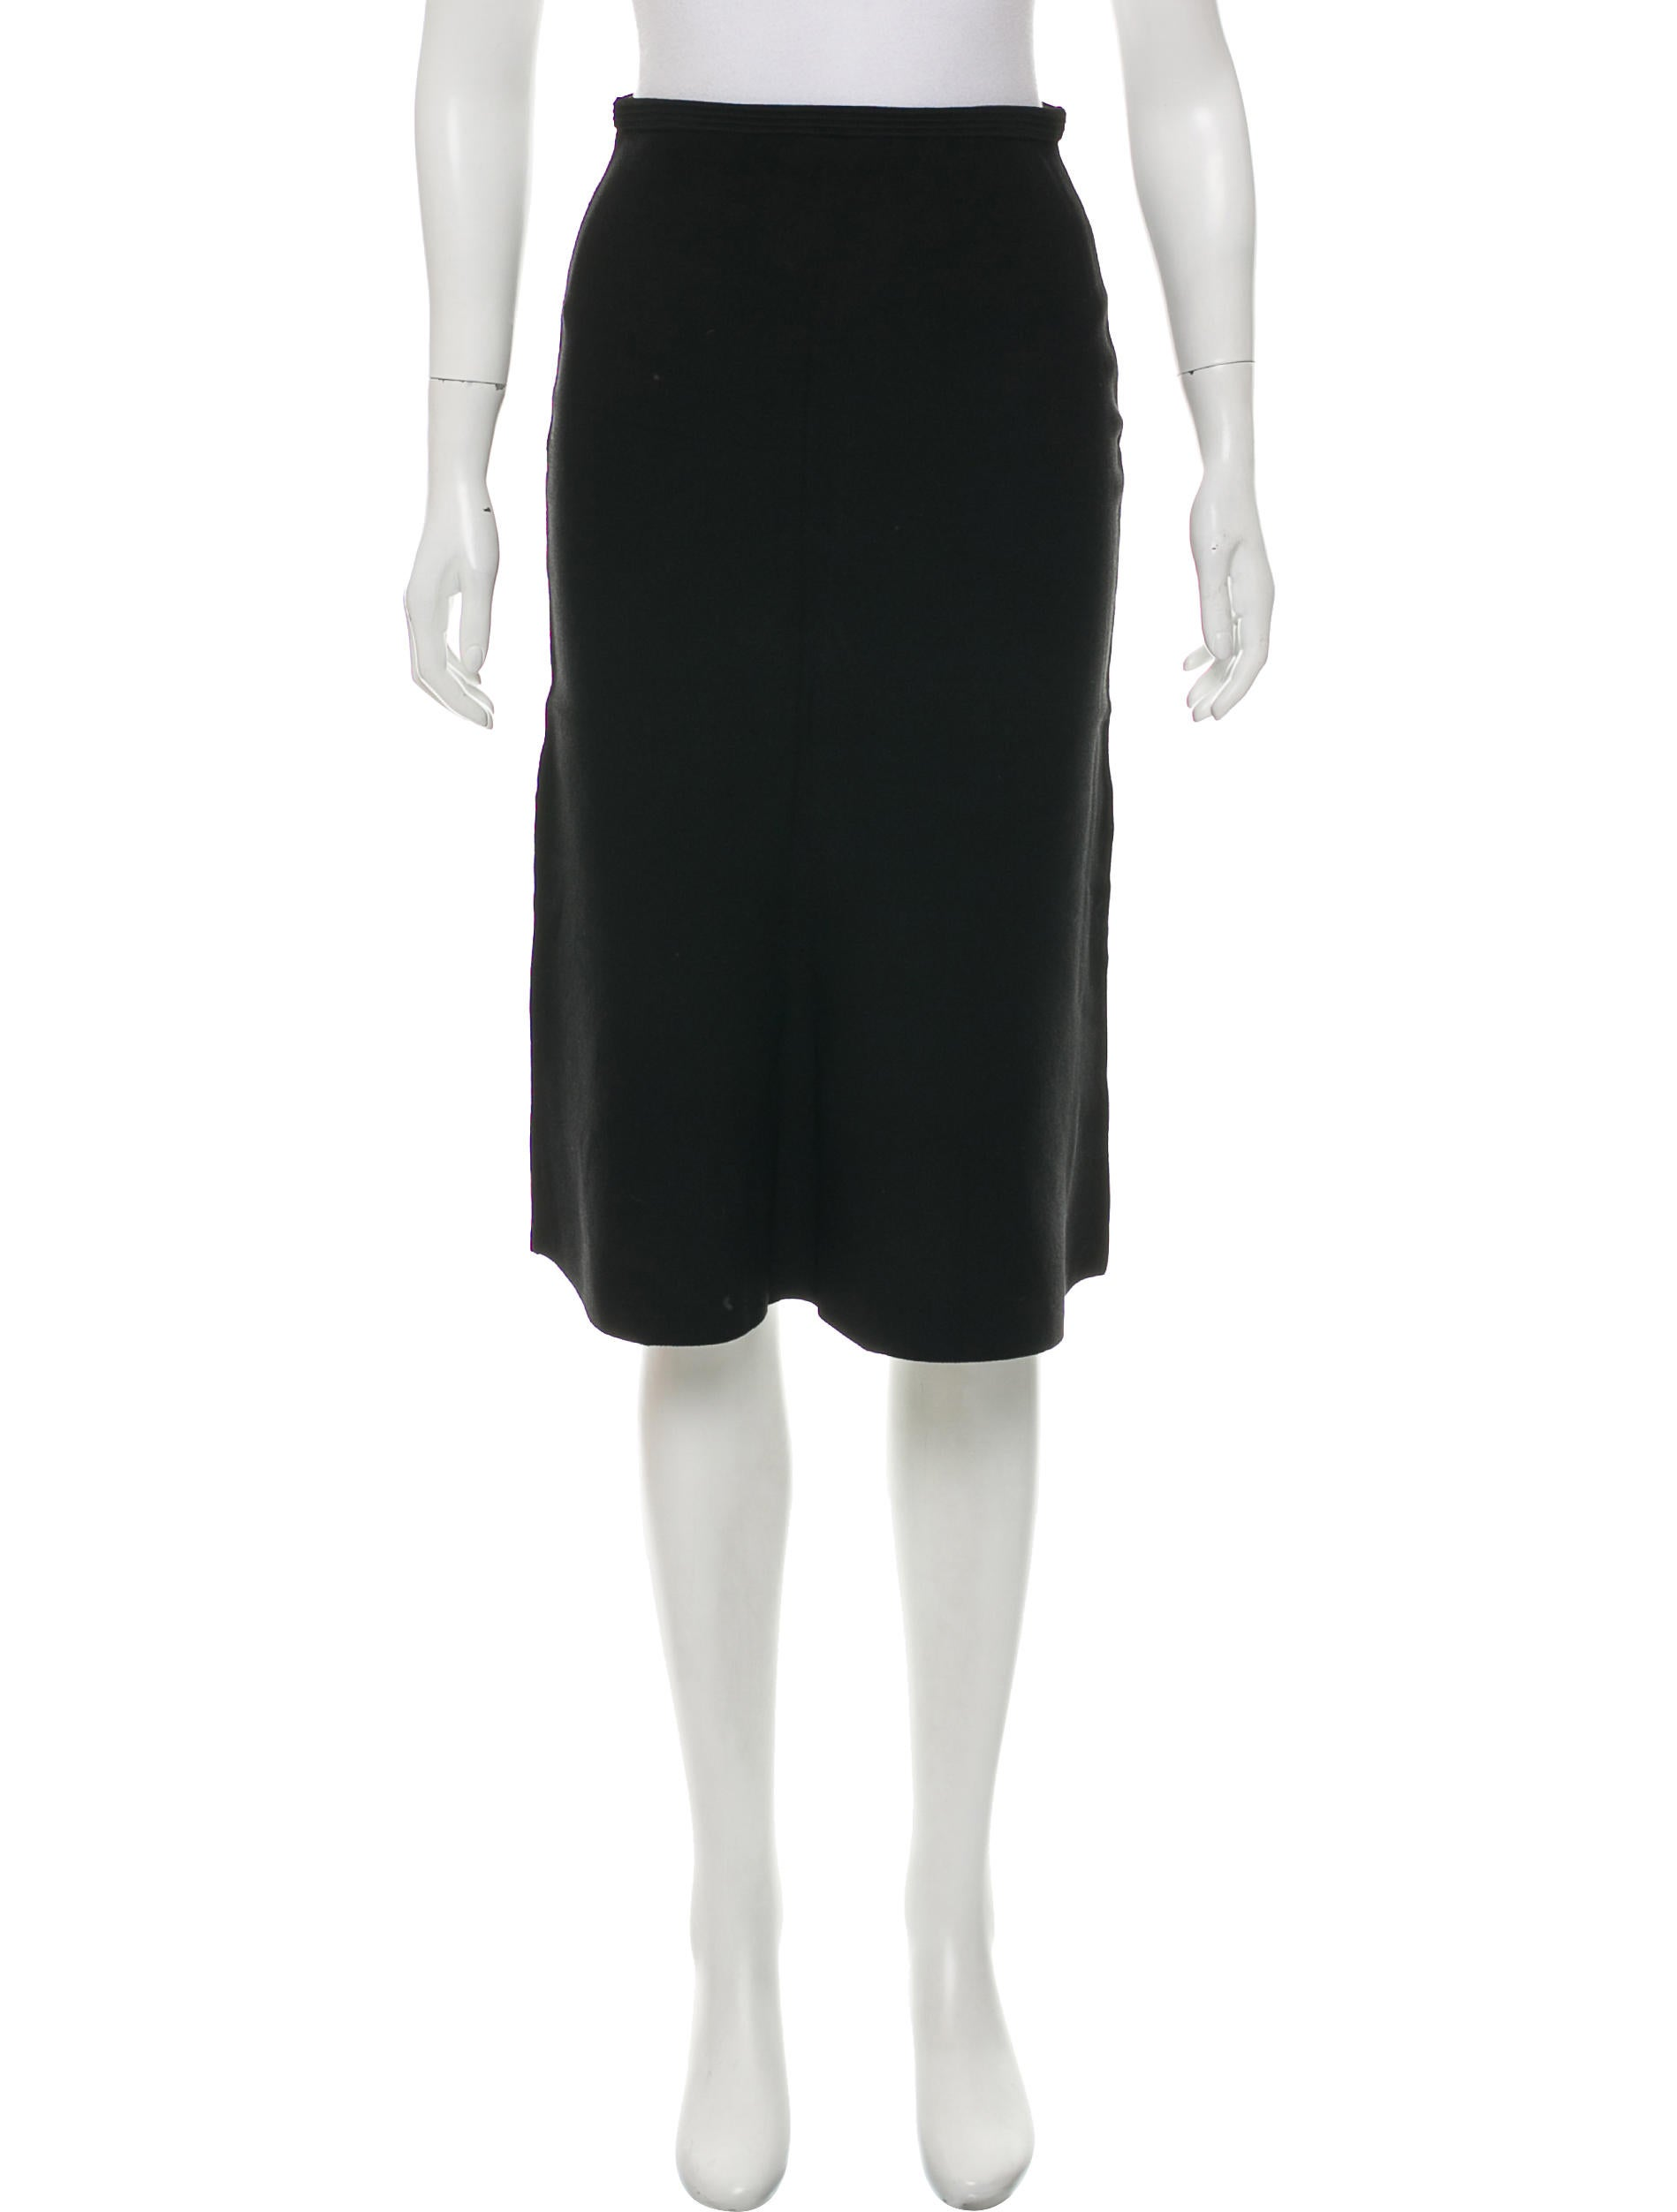 Diane von Furstenberg Bodycon Knee-Length Skirt w/ Tags - Clothing -           WDI166306 | The Real